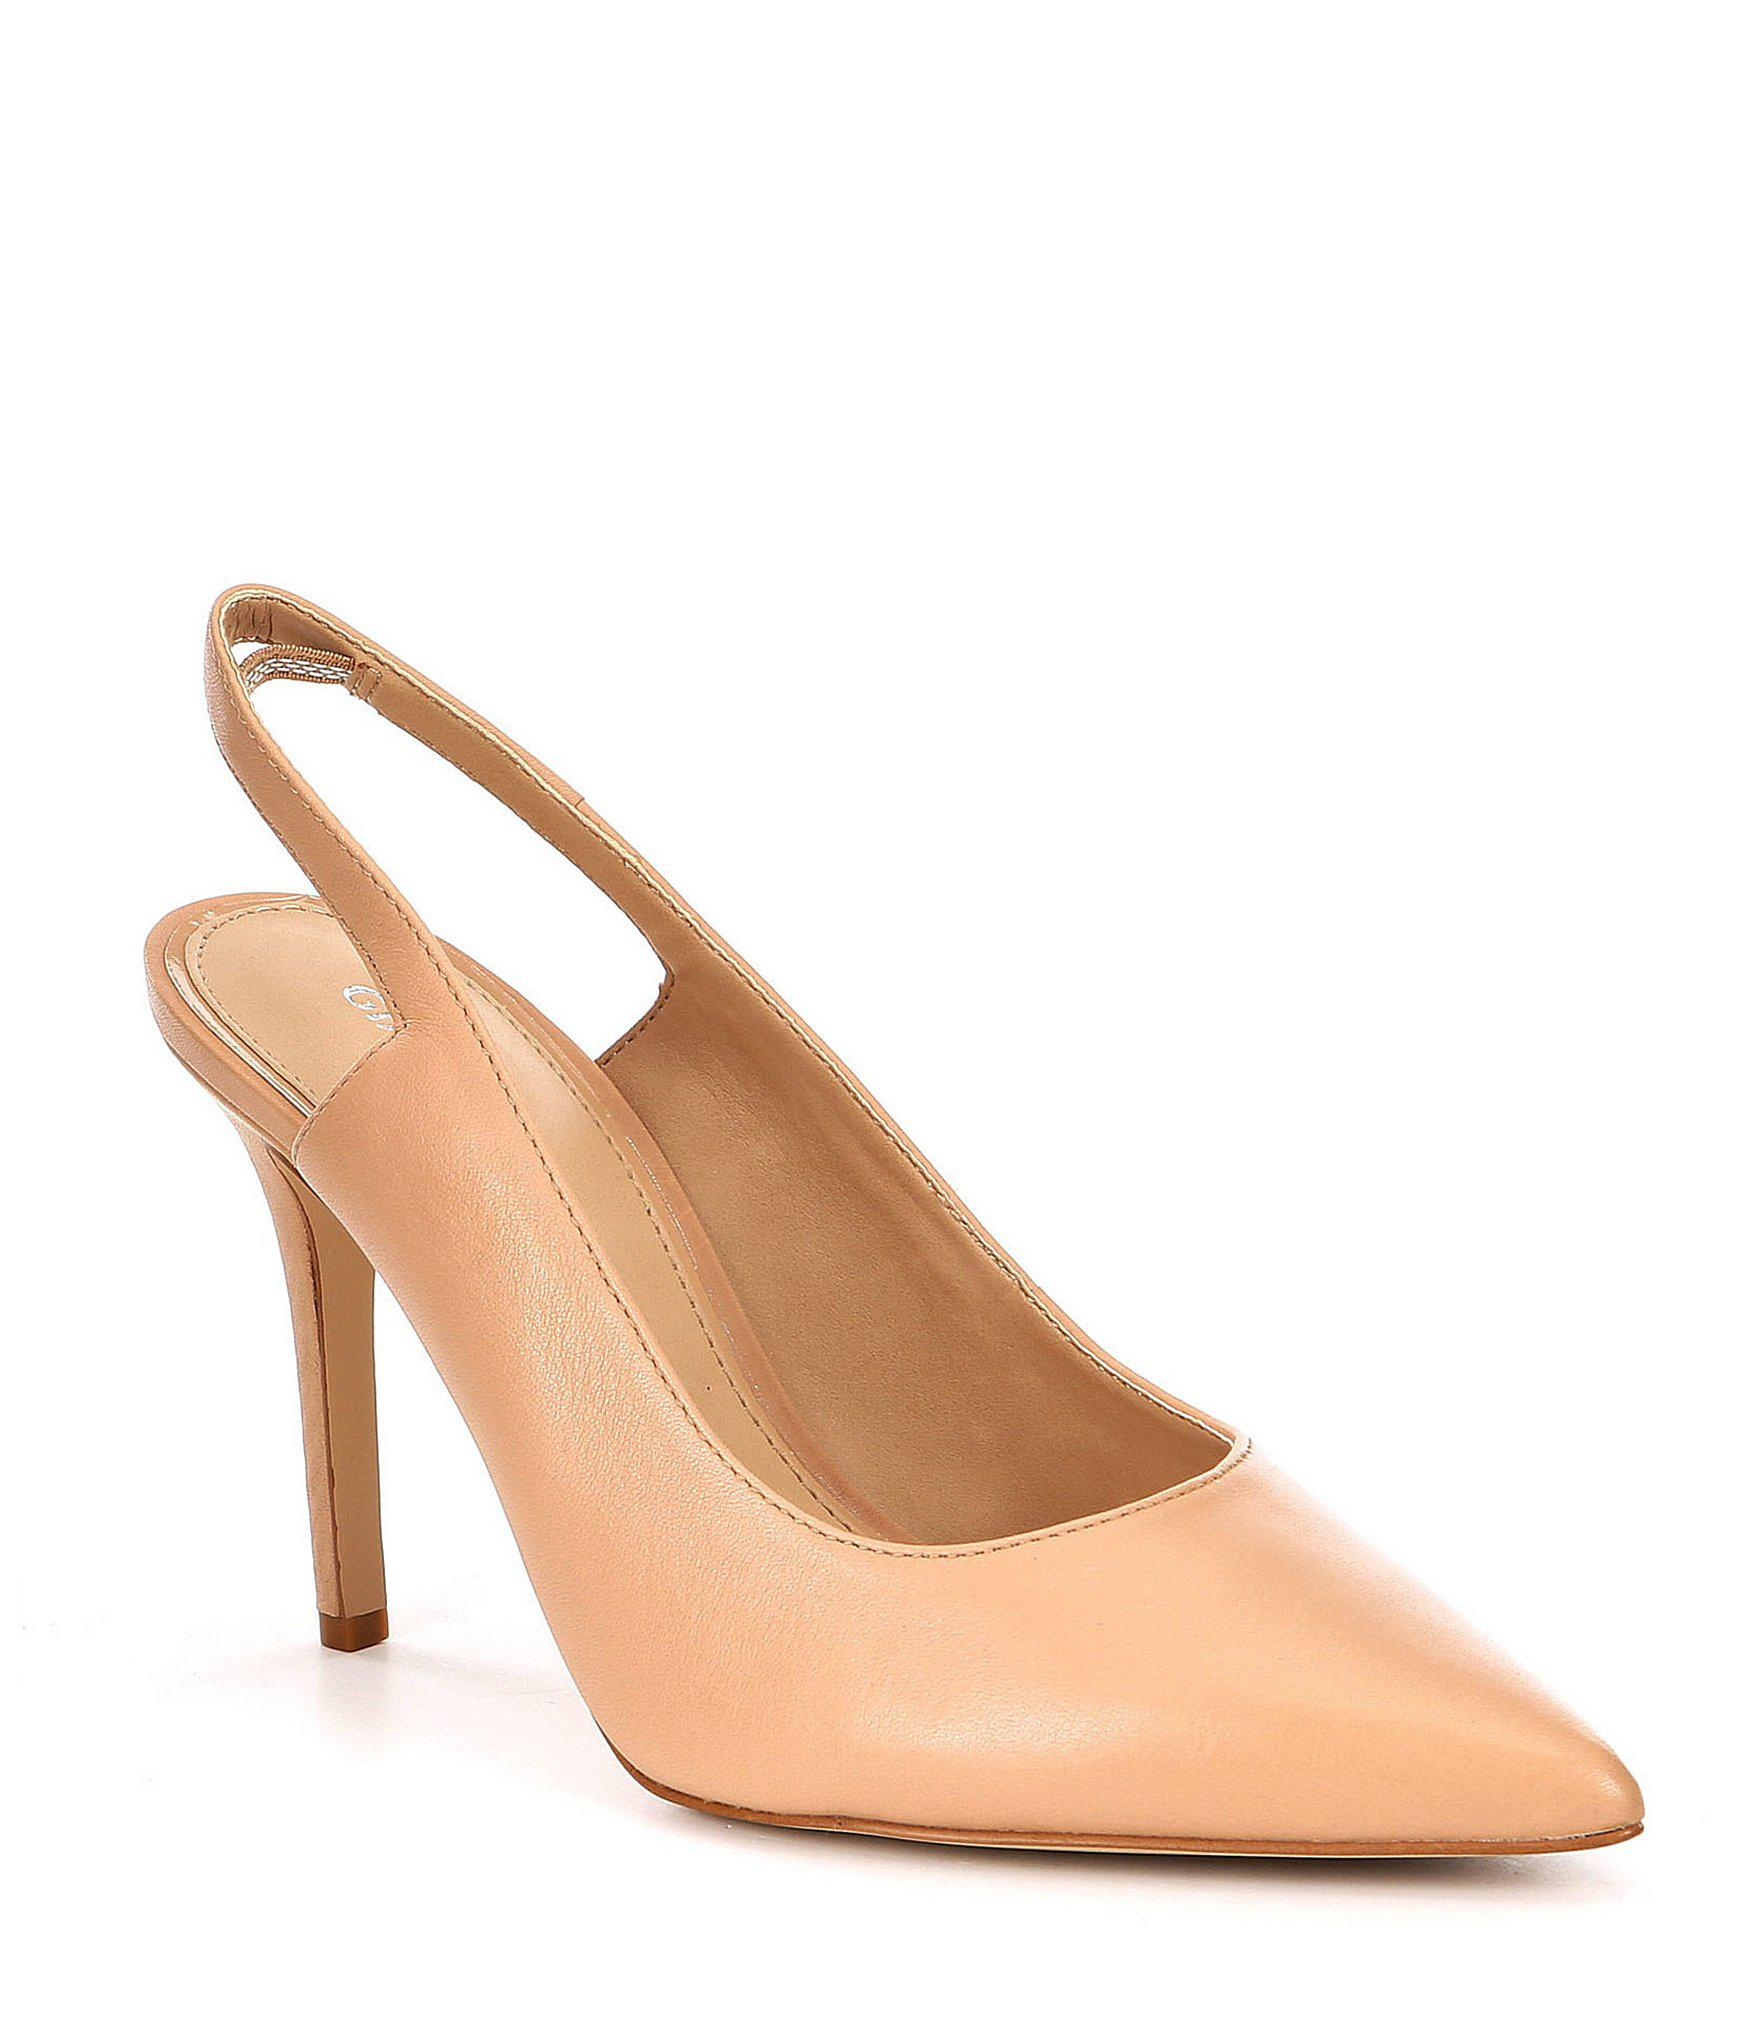 013e8fafe1a3 Lyst - Gianni Bini Latessa Slingback Leather Pumps in Natural